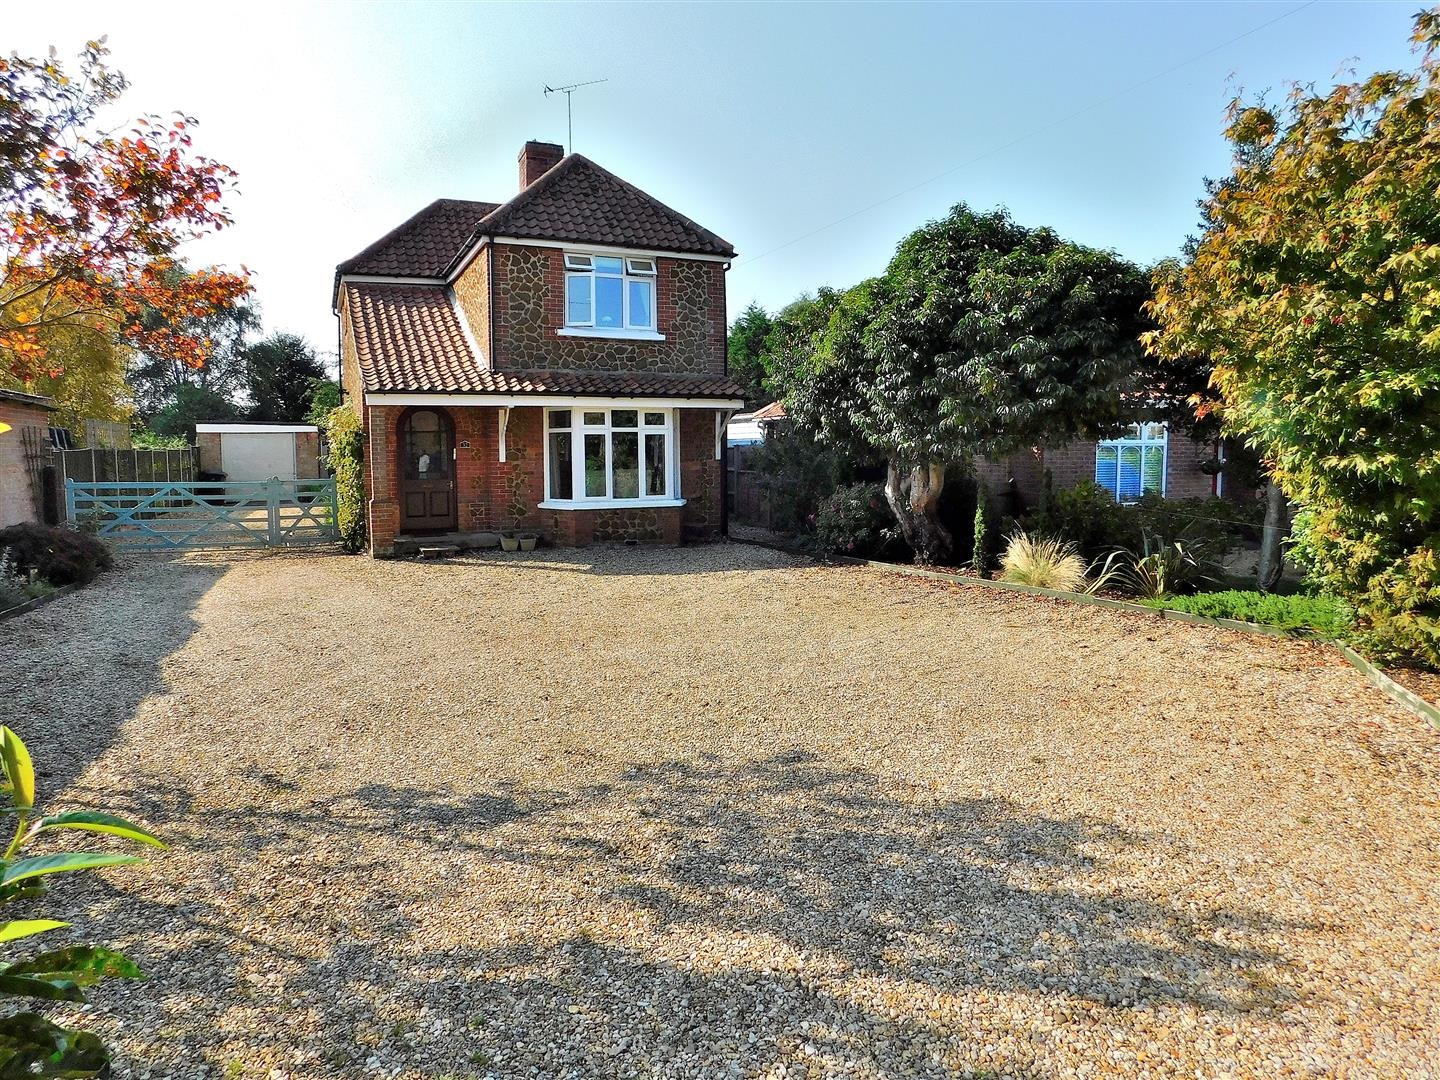 4 bed detached house for sale in King's Lynn, PE31 6HS 0